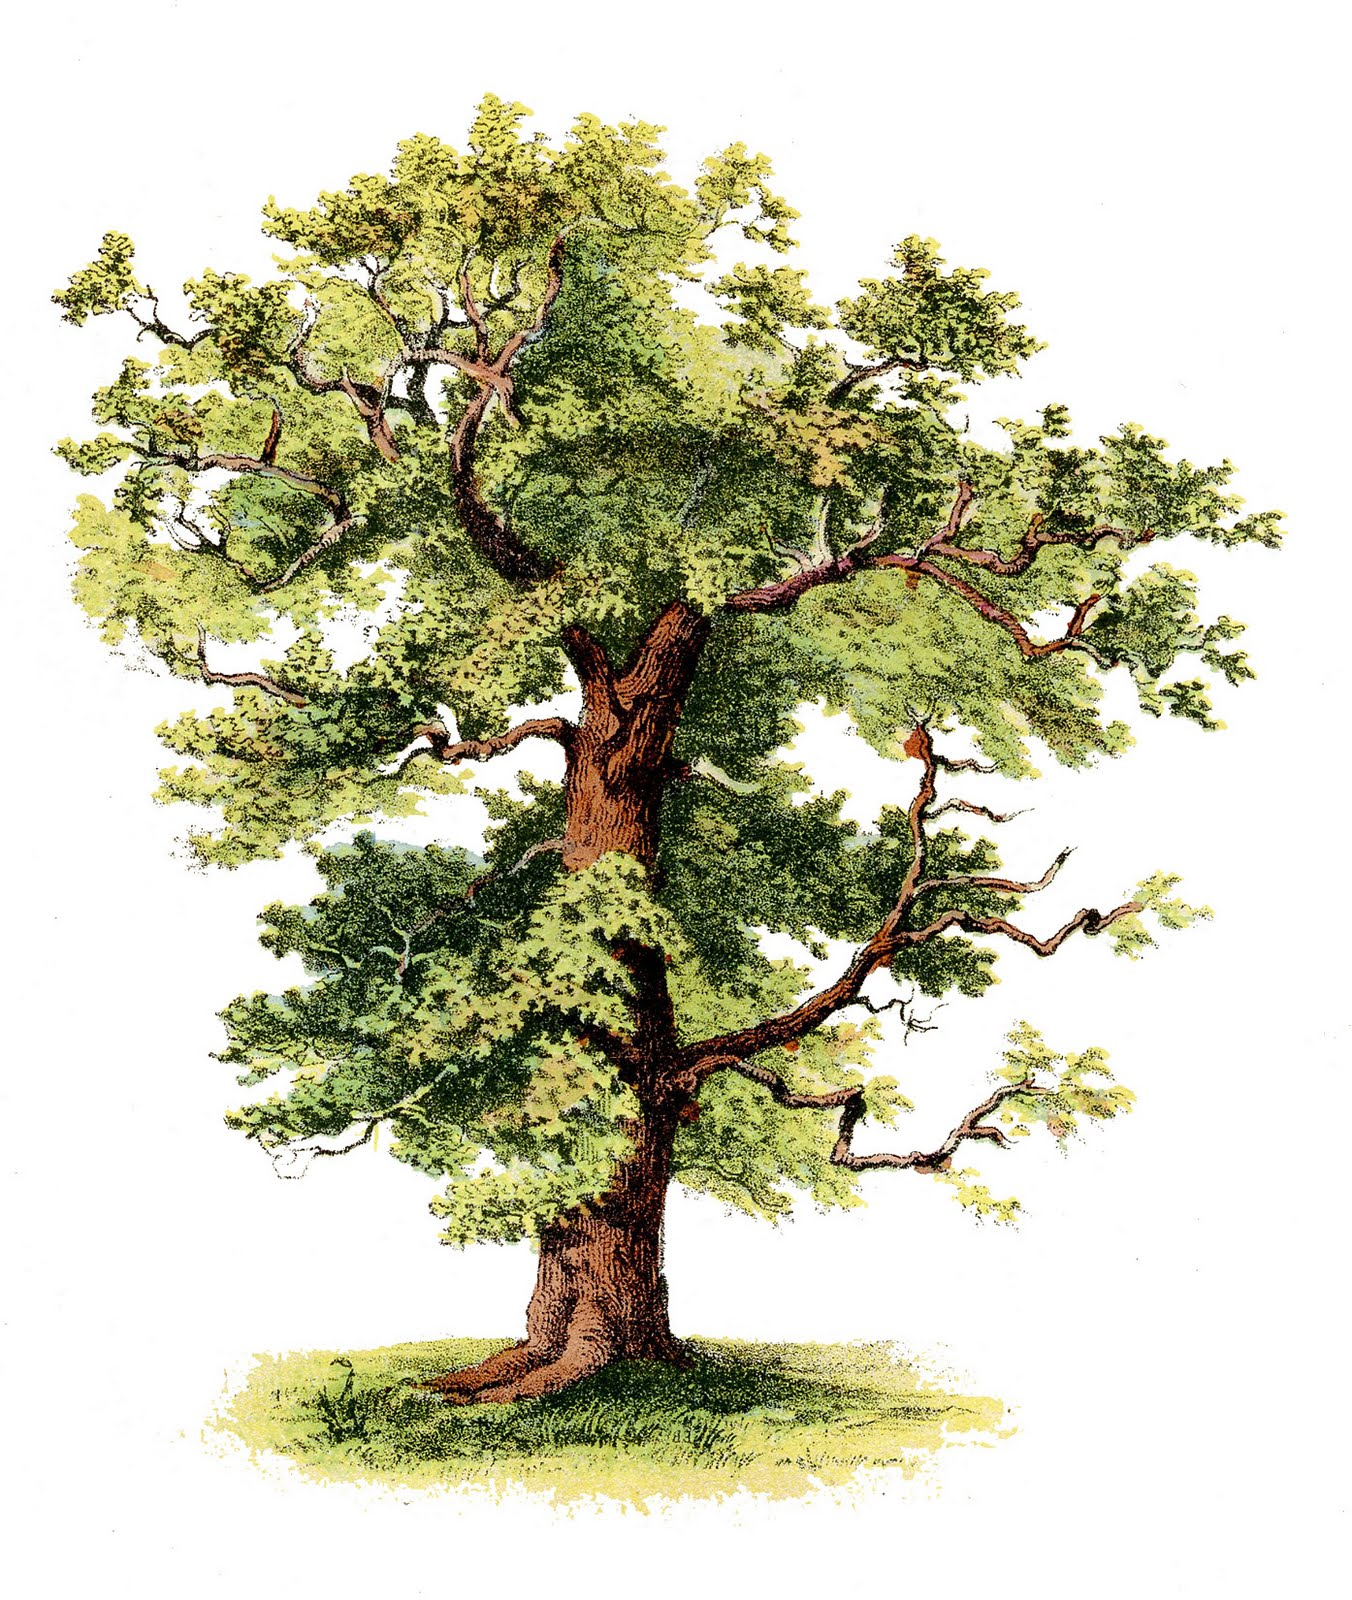 Antique Clip Art Beautiful Tree The Grap-Antique Clip Art Beautiful Tree The Graphics Fairy-2